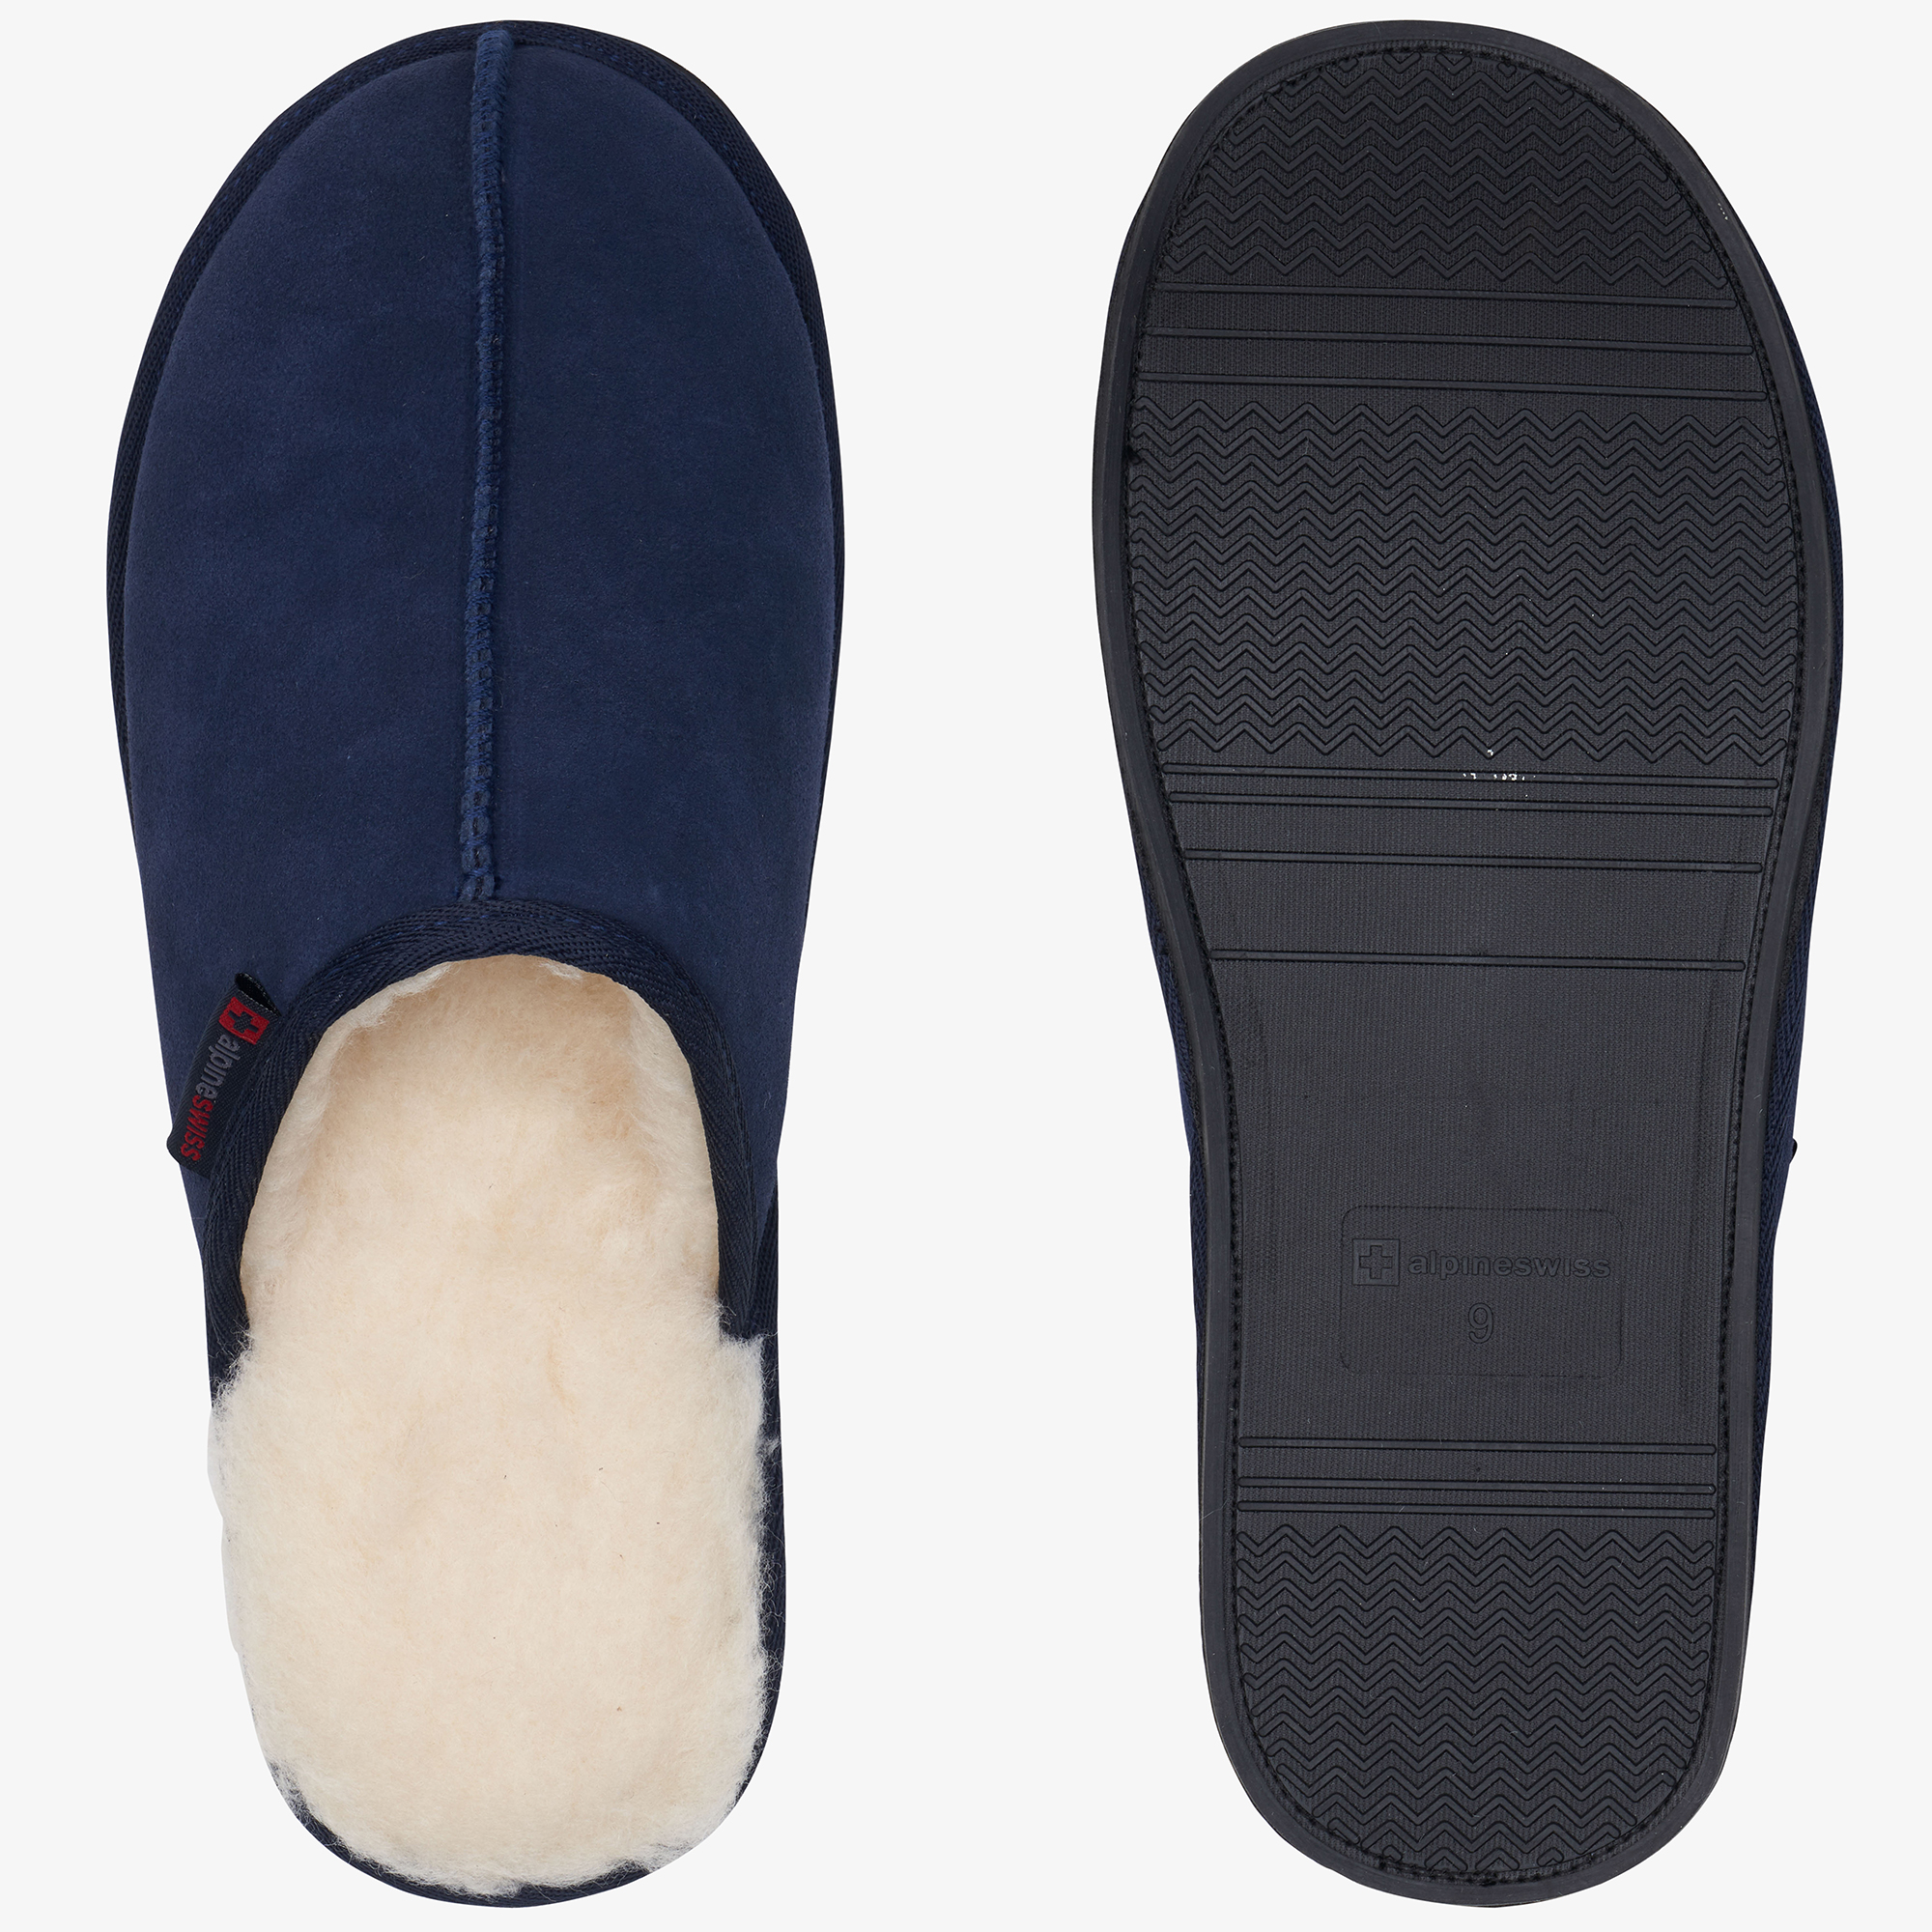 Alpine-Swiss-Mens-Suede-Memory-Foam-Scuff-Slippers-Comfort-Slip-On-House-Shoes thumbnail 33